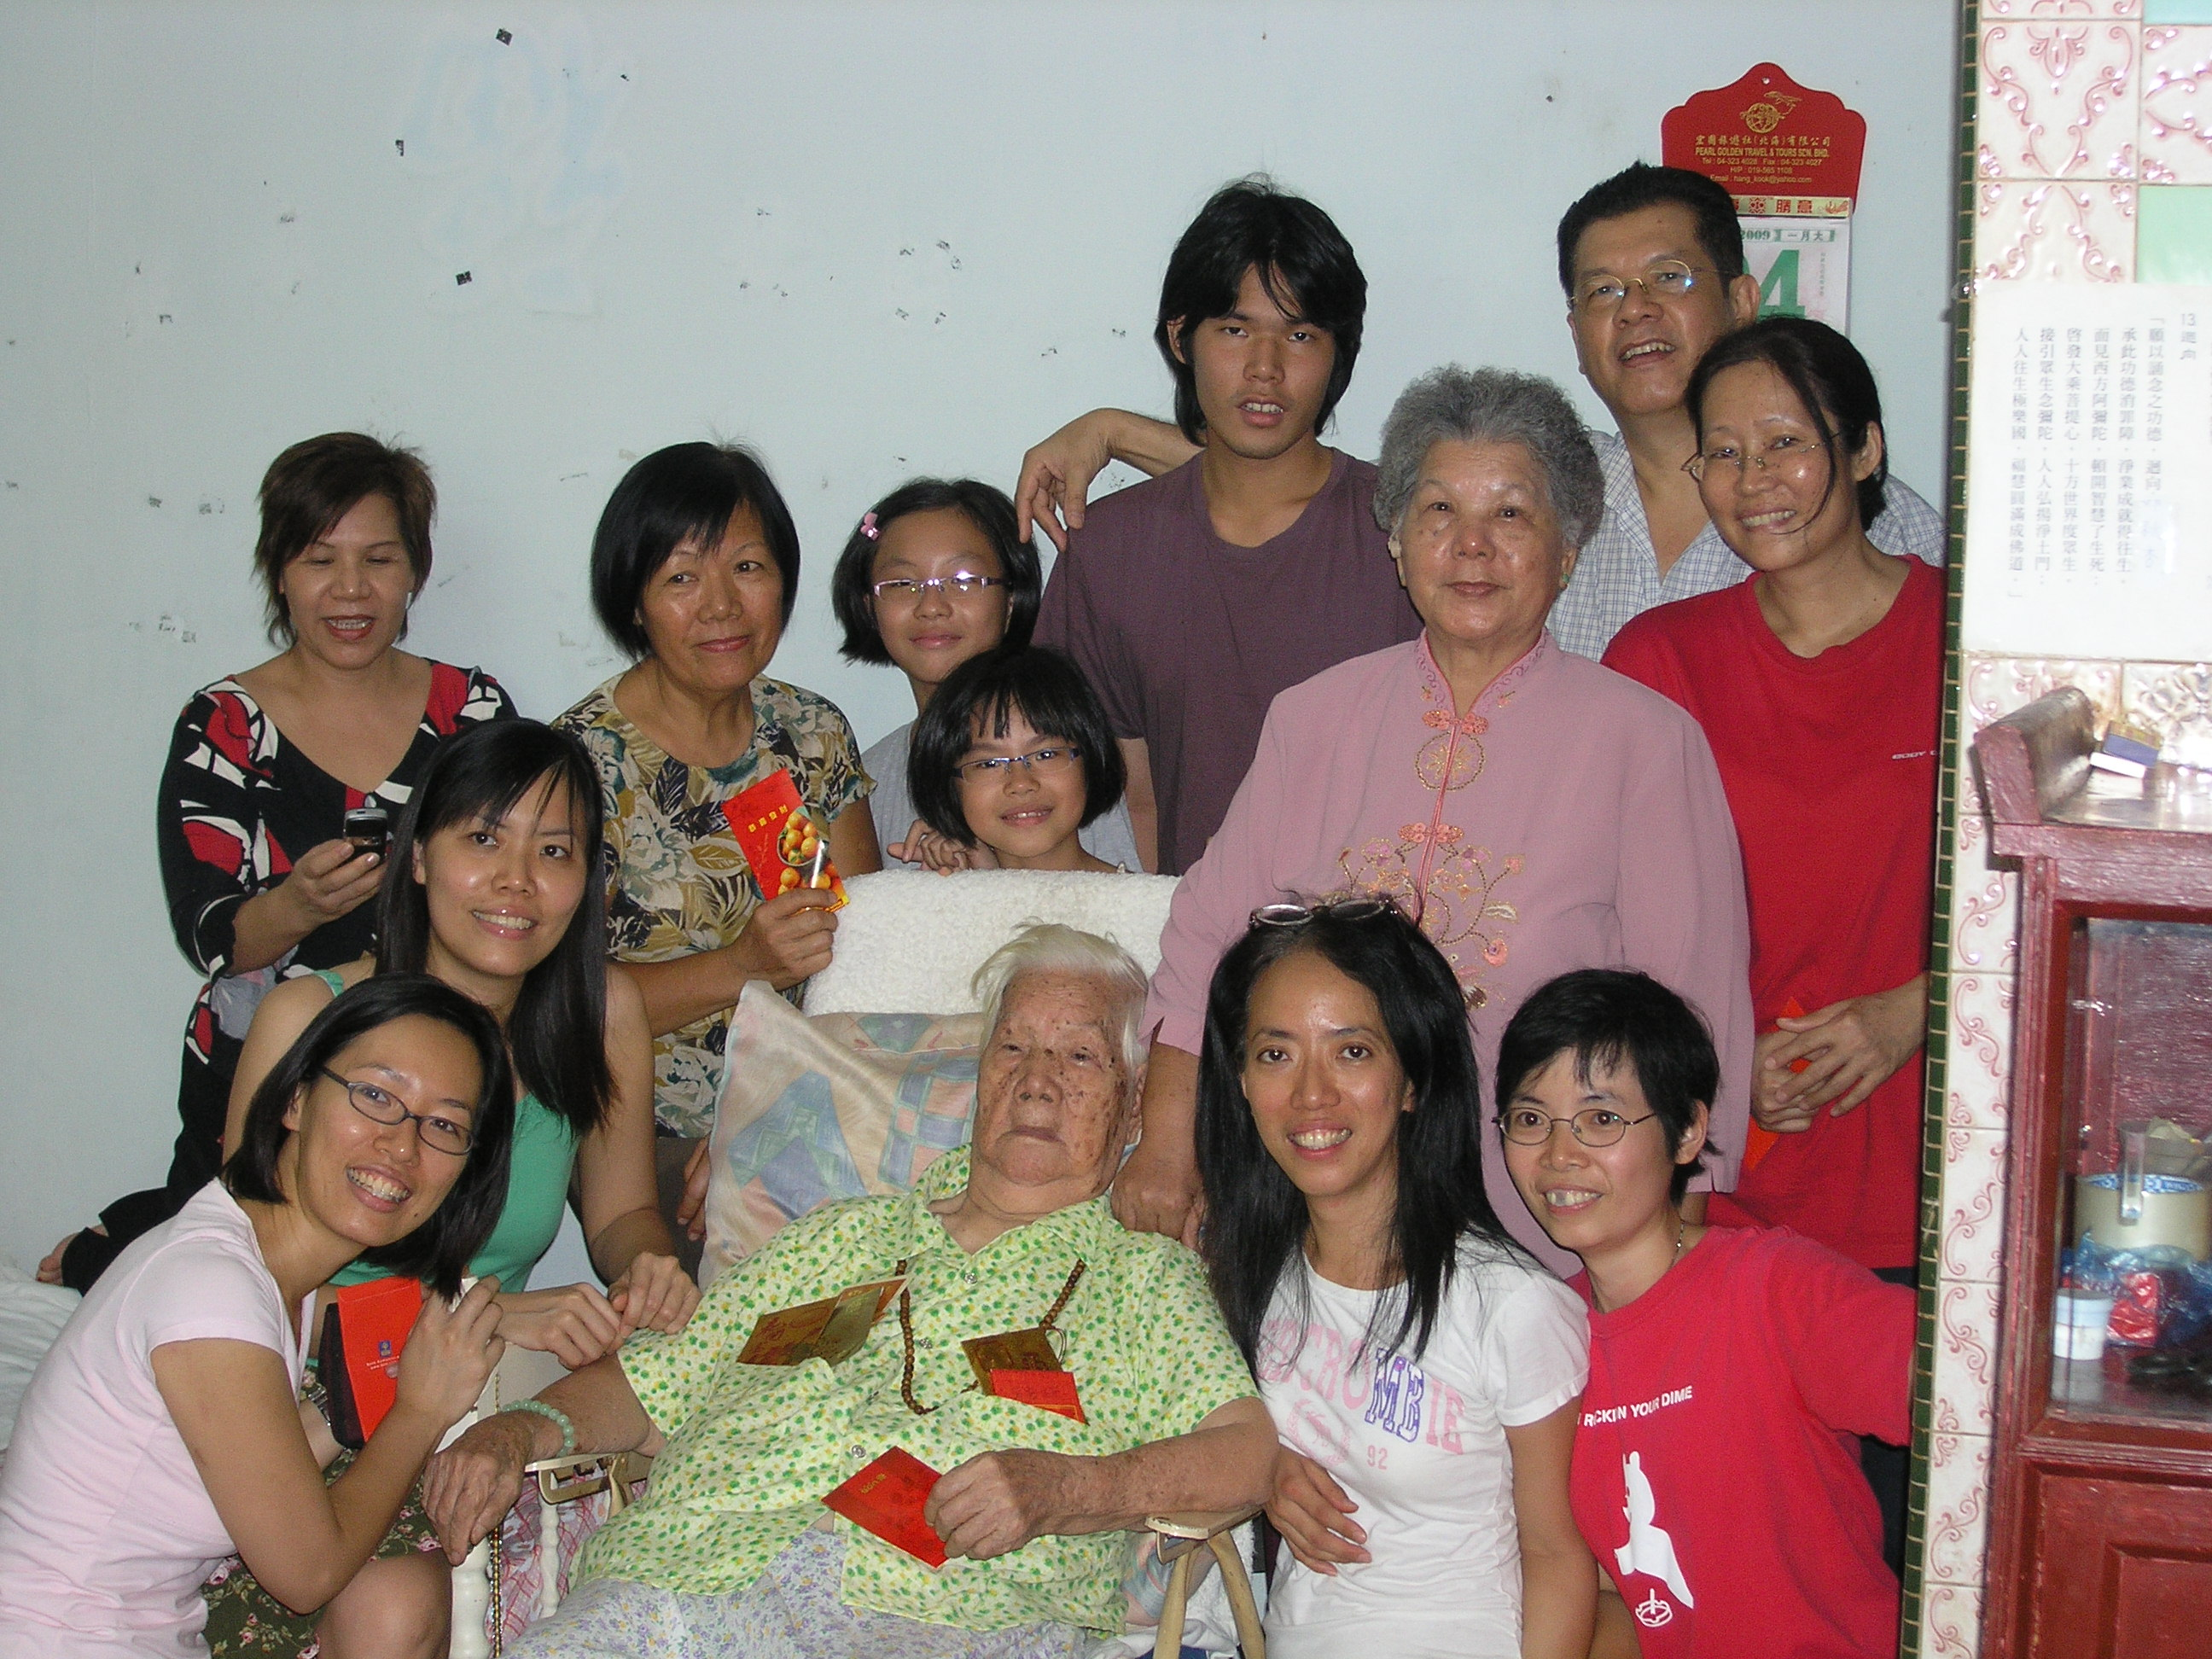 Giap Family Chinese New Year Gathering 2008. Image 10. Image size:2592x1944px